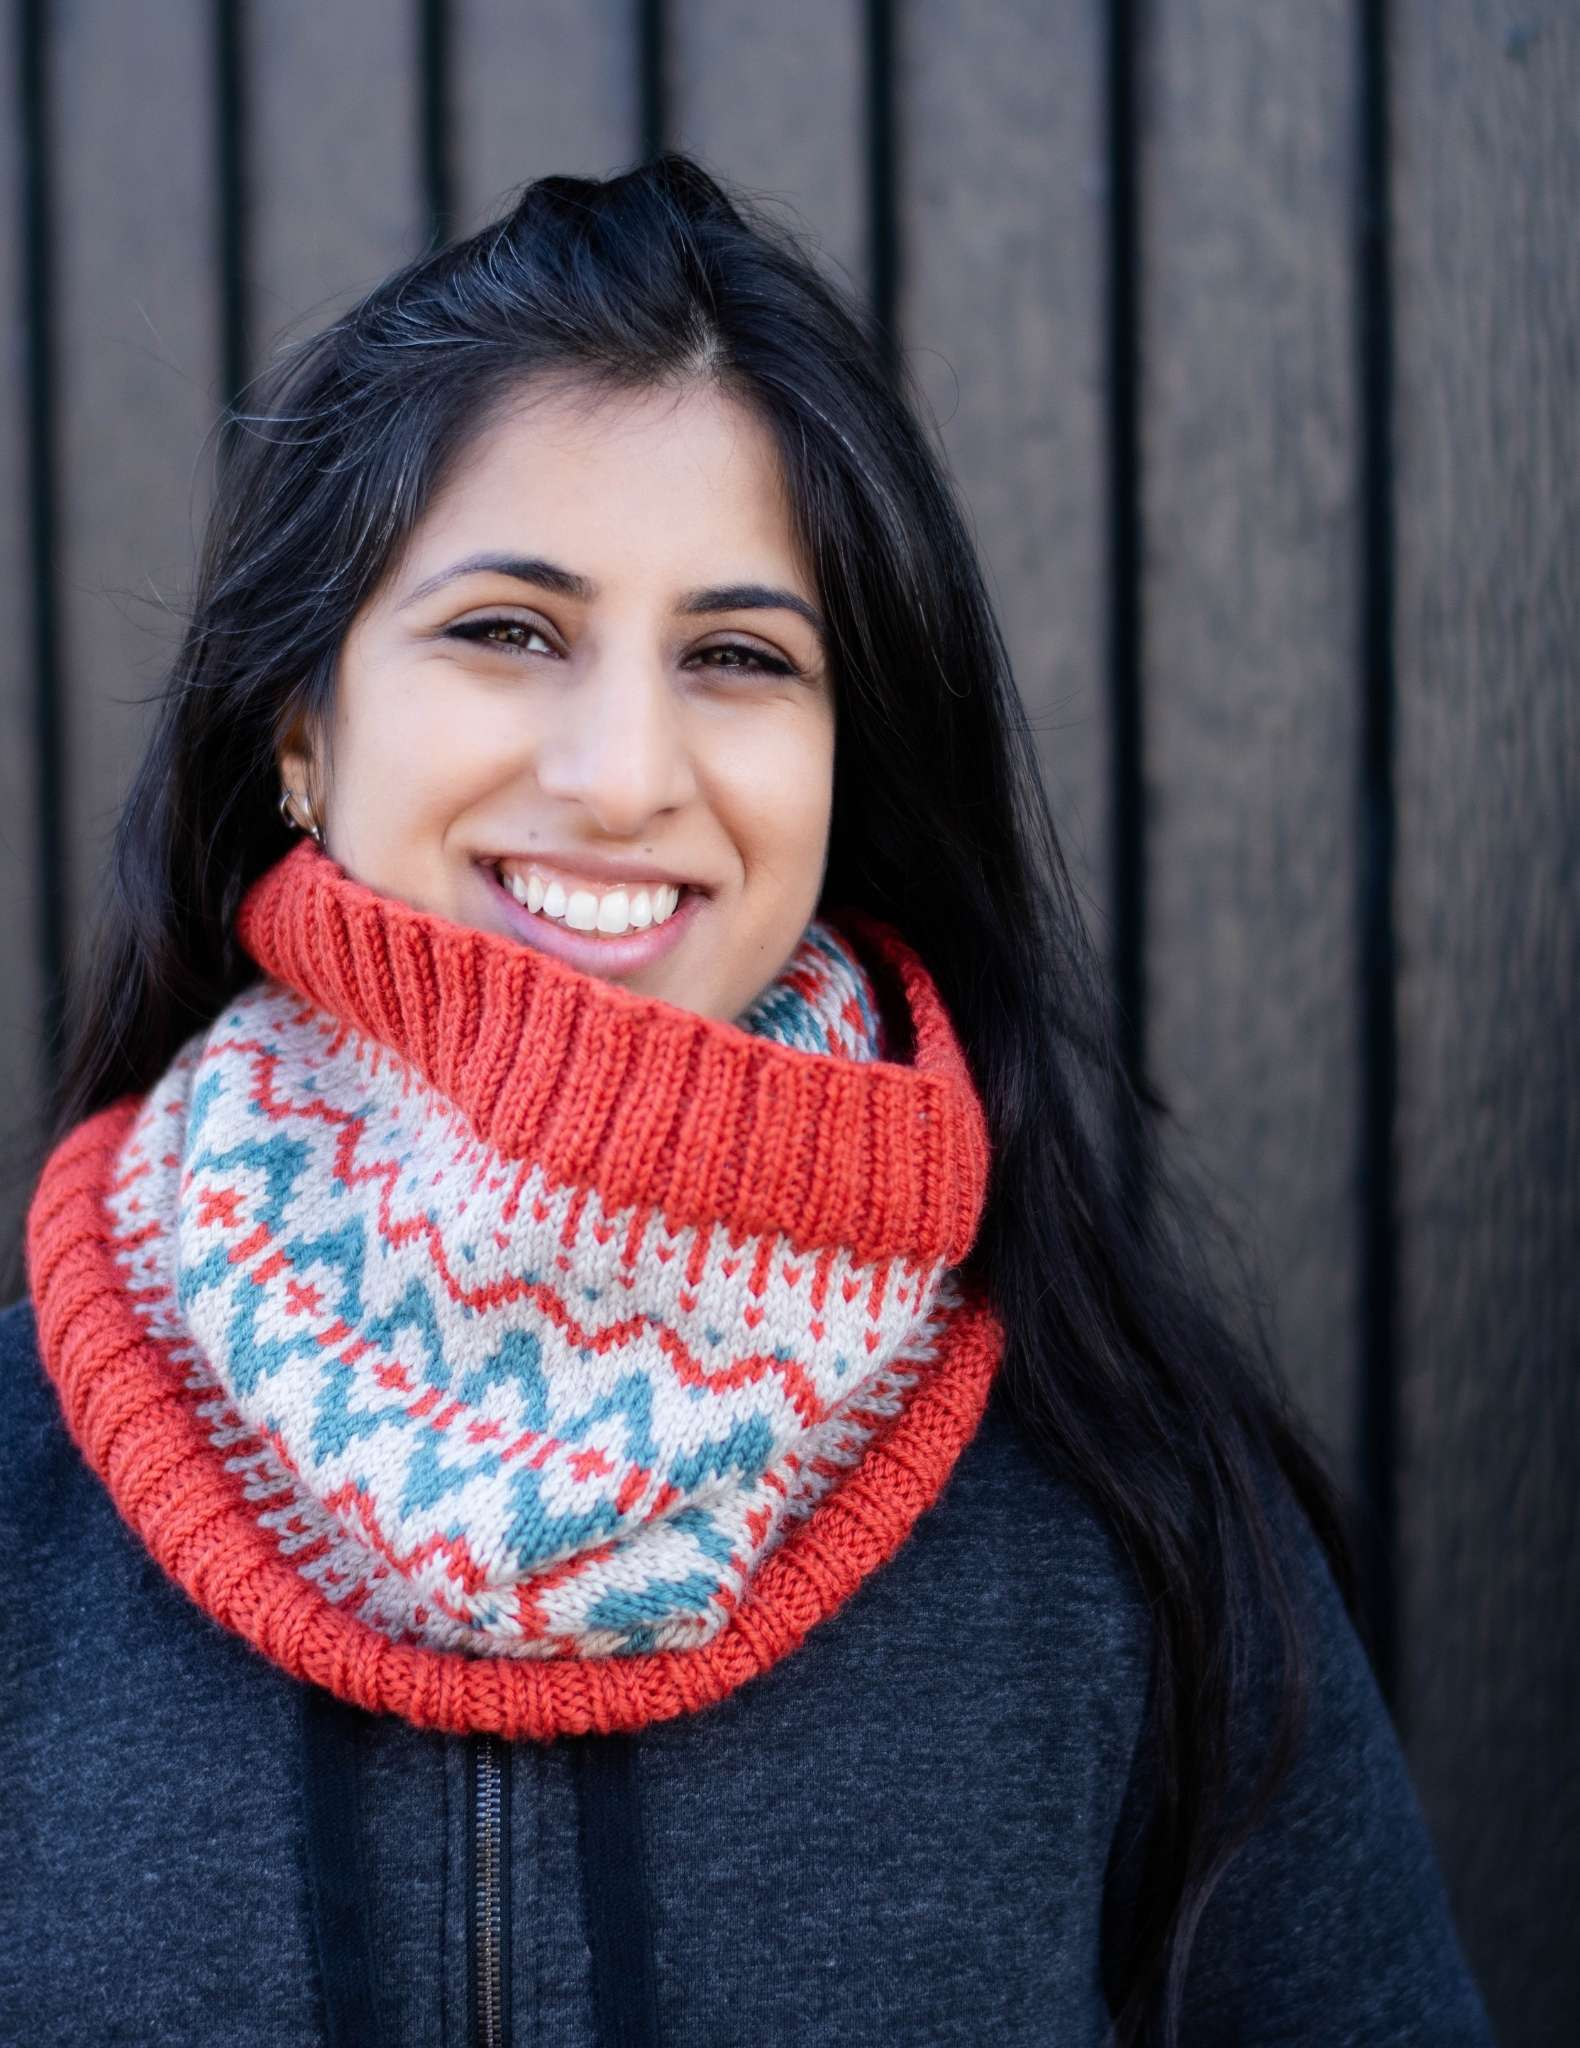 a woman with dark hair wears a red, white and teal colourwork cowl, she is smiling